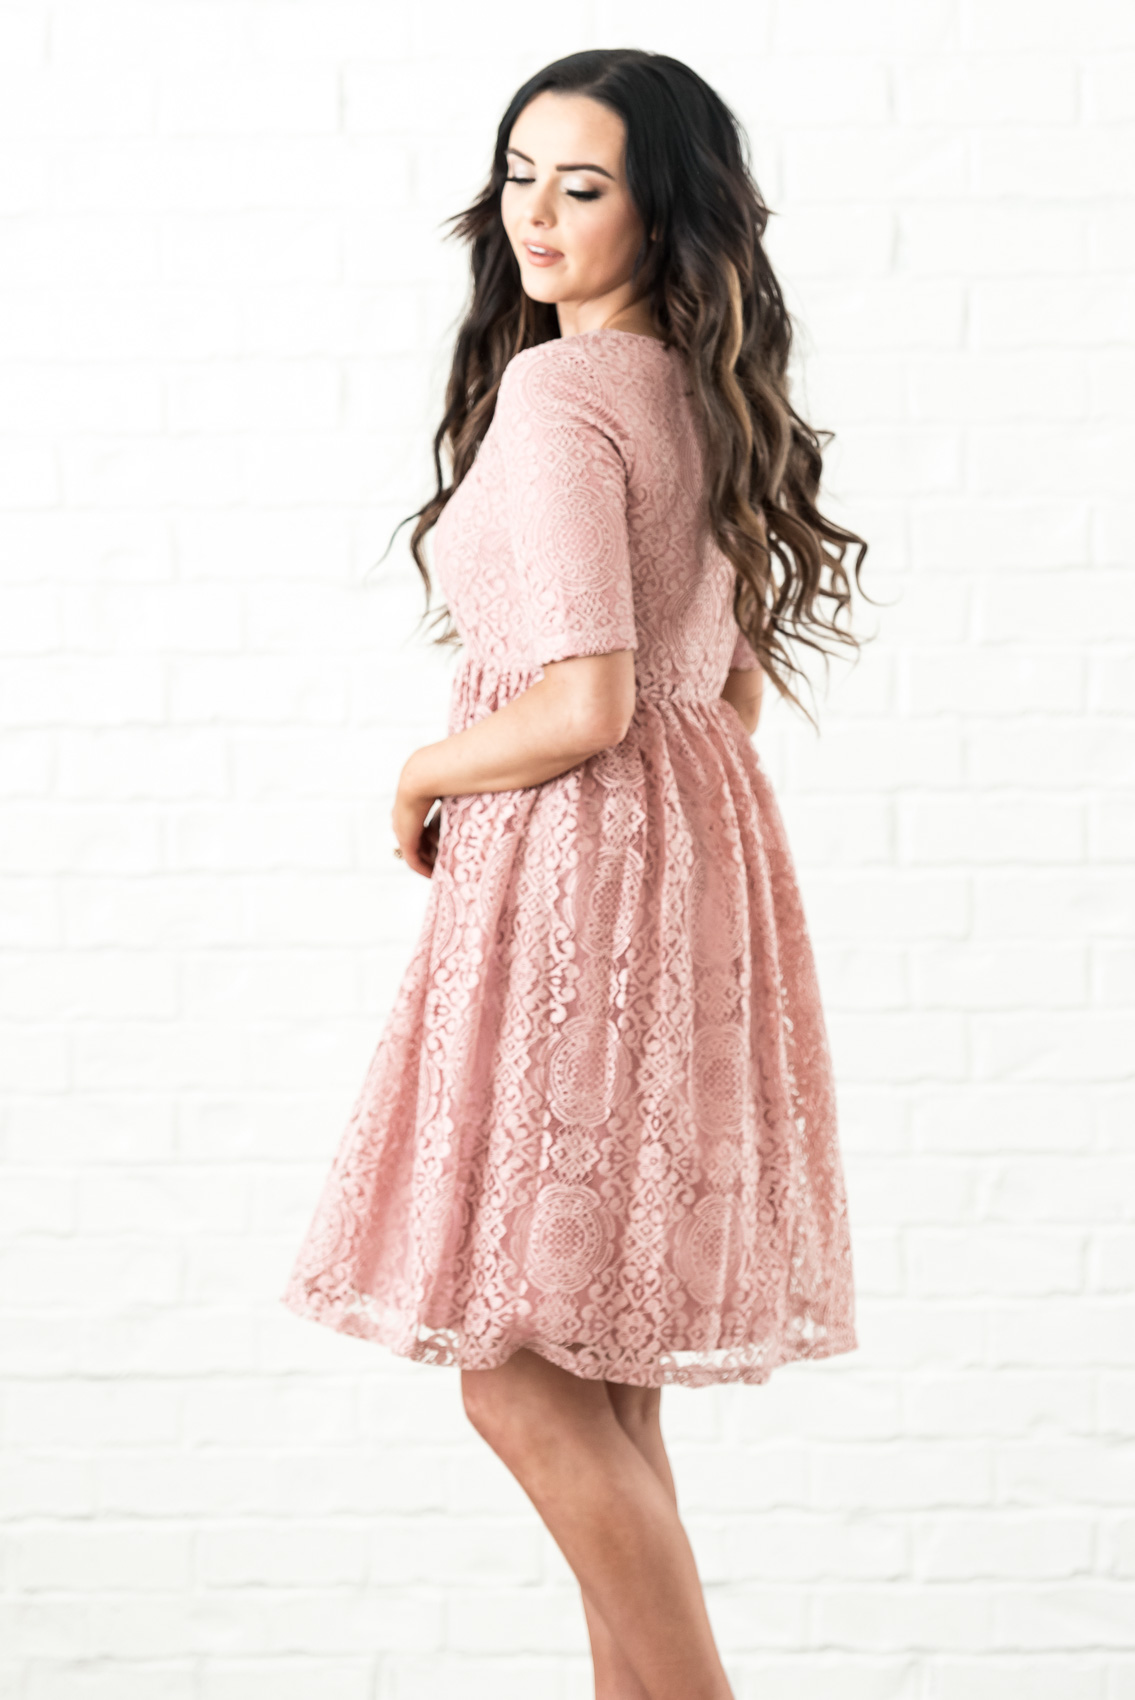 ab536ba6ff9b ... Erin Modest Dress in Blush Pink / Rose Pink Lace